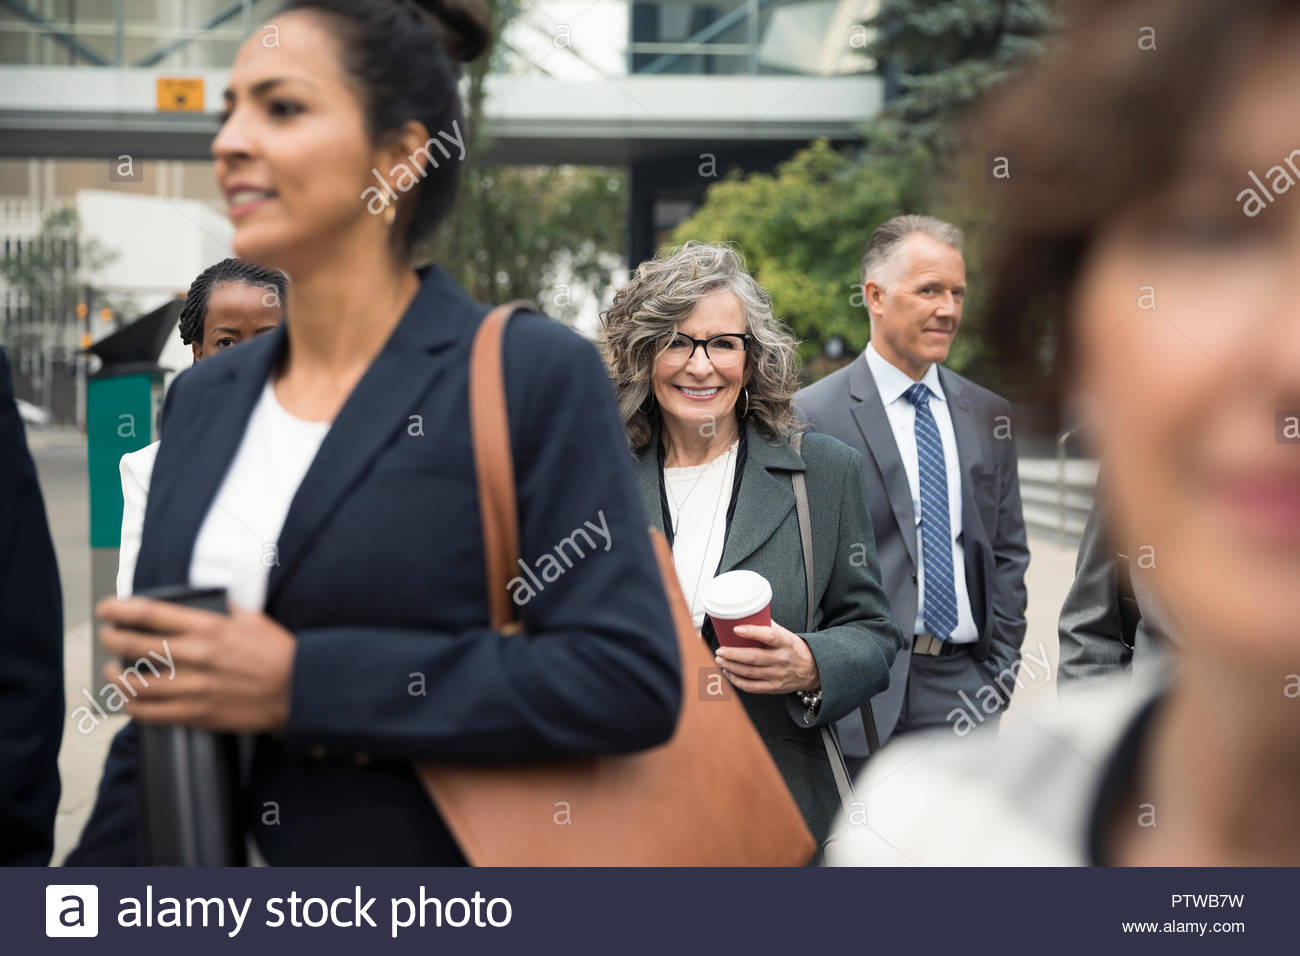 Confident senior businesswoman with coffee among business people on urban sidewalk - Stock Image